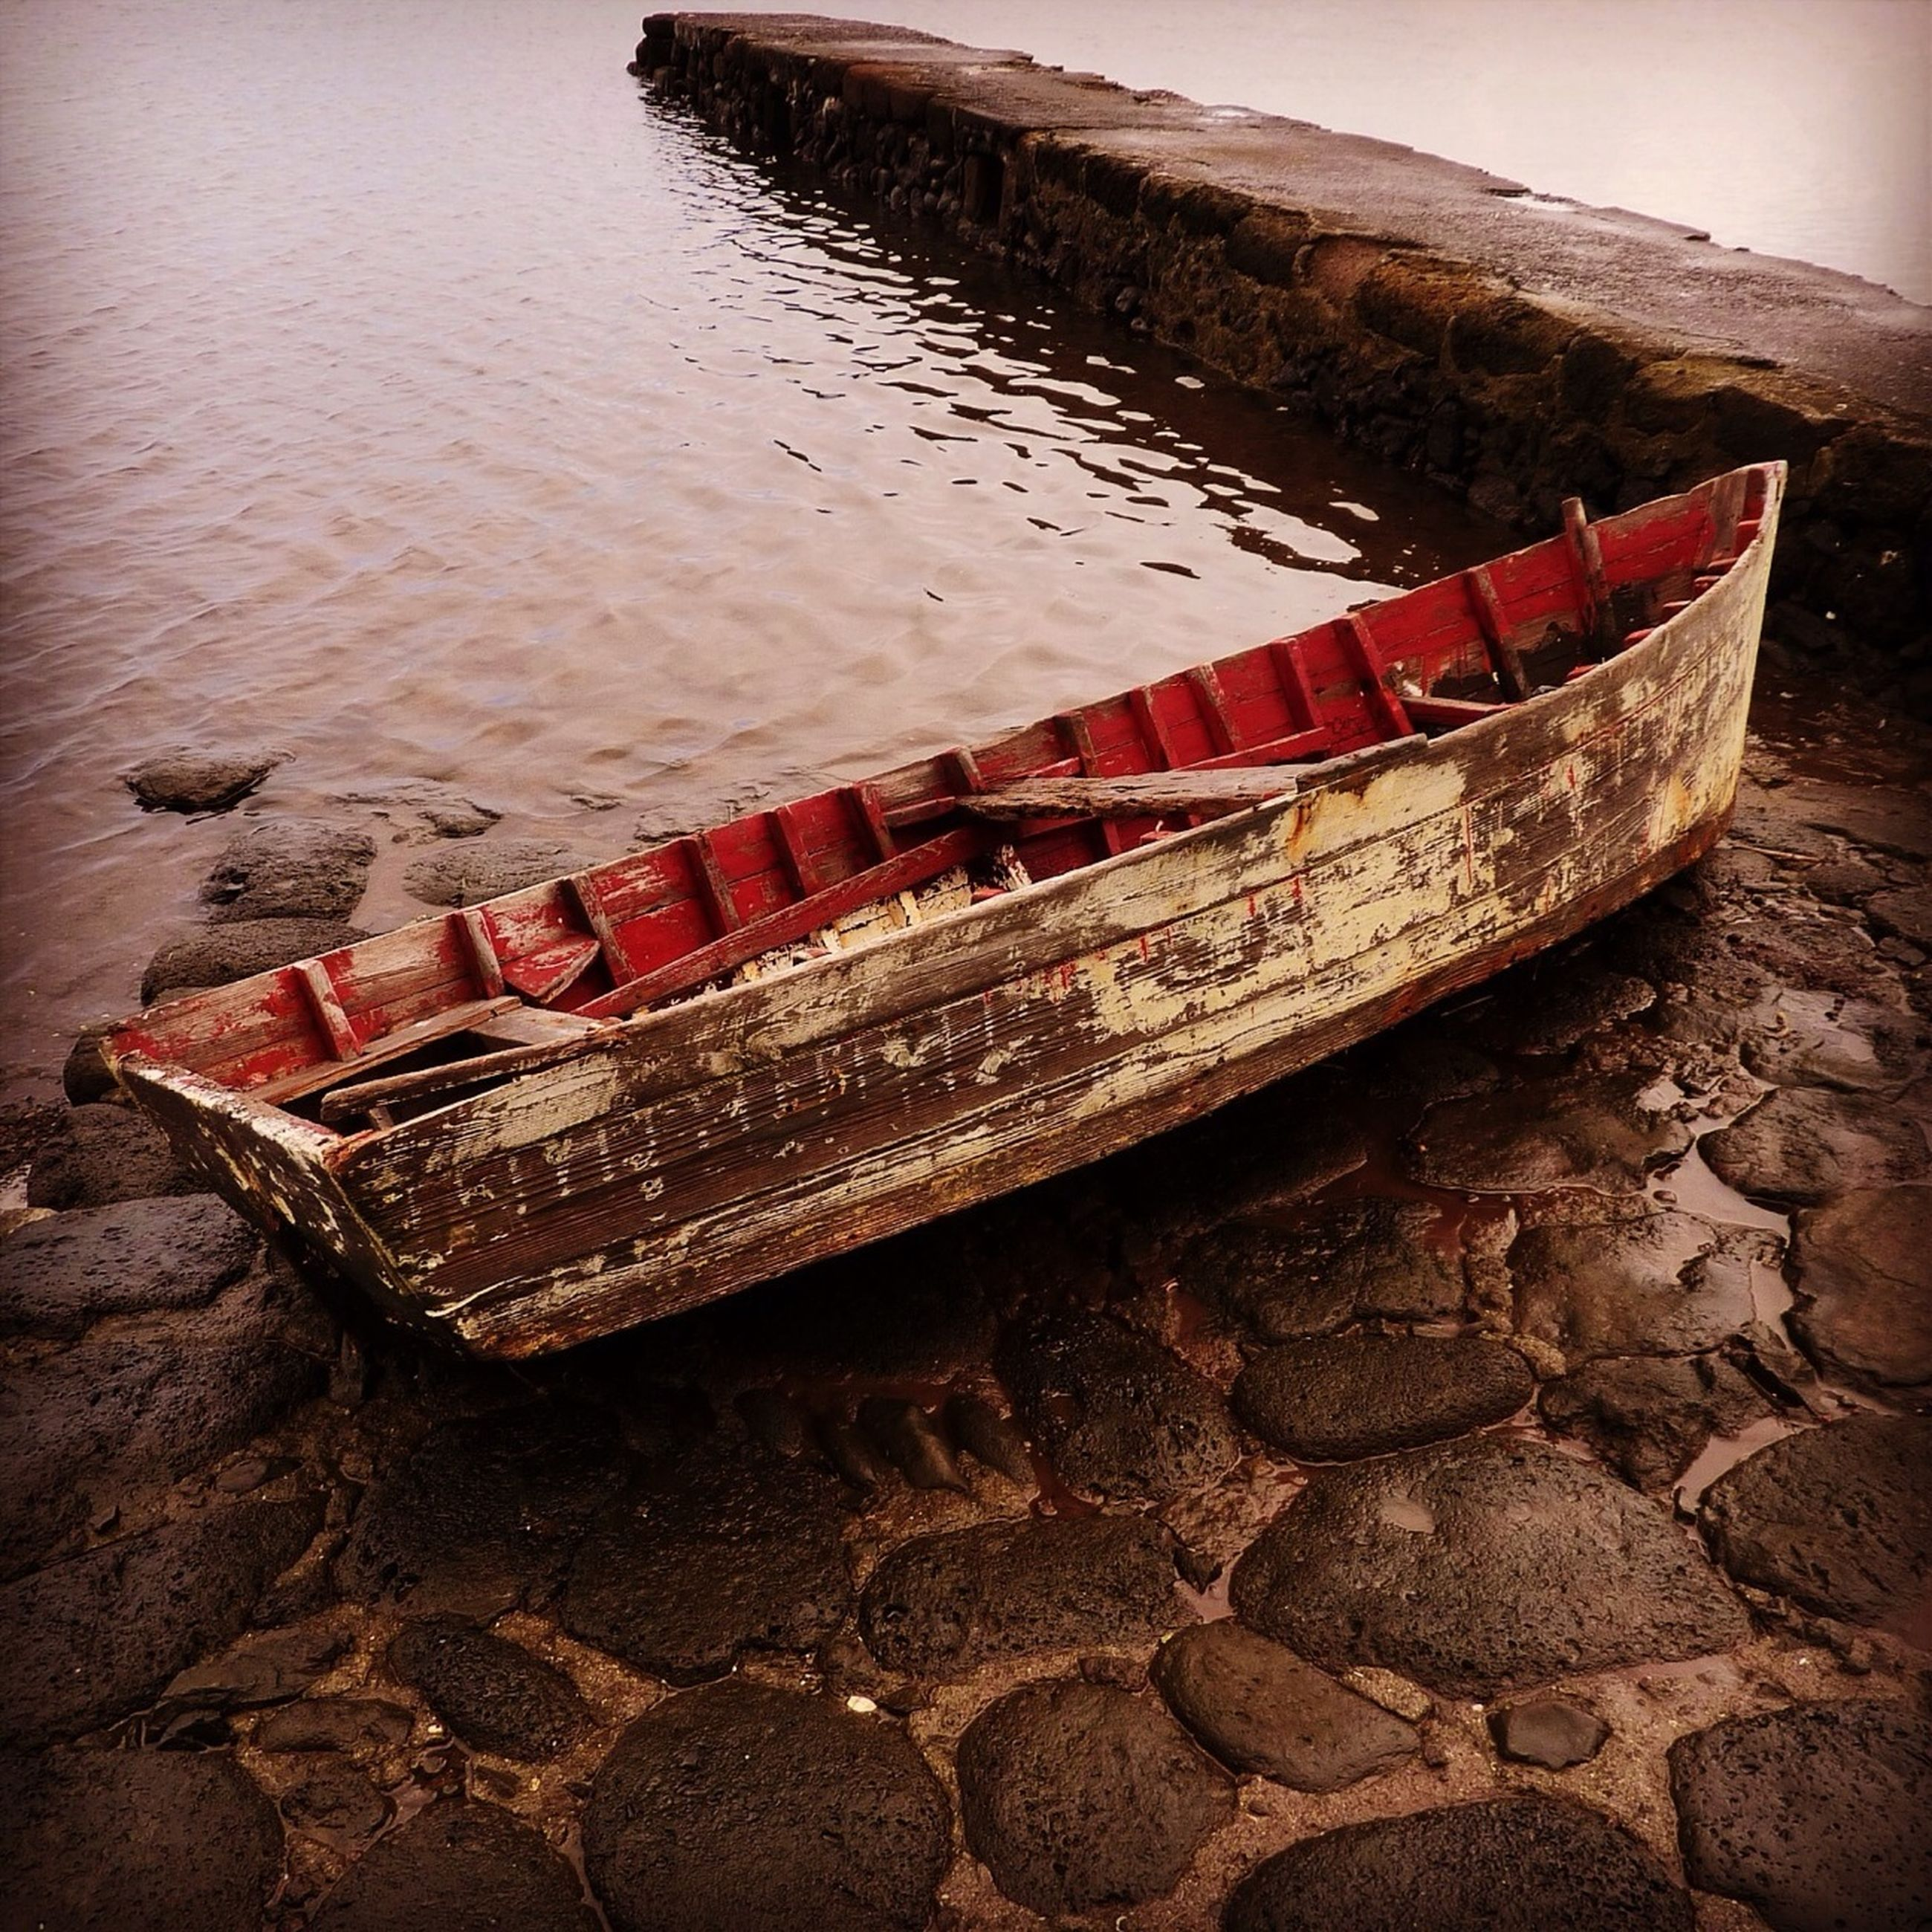 water, nautical vessel, boat, transportation, moored, mode of transport, lake, abandoned, red, sea, day, outdoors, beach, high angle view, nature, tranquility, no people, rock - object, shore, river